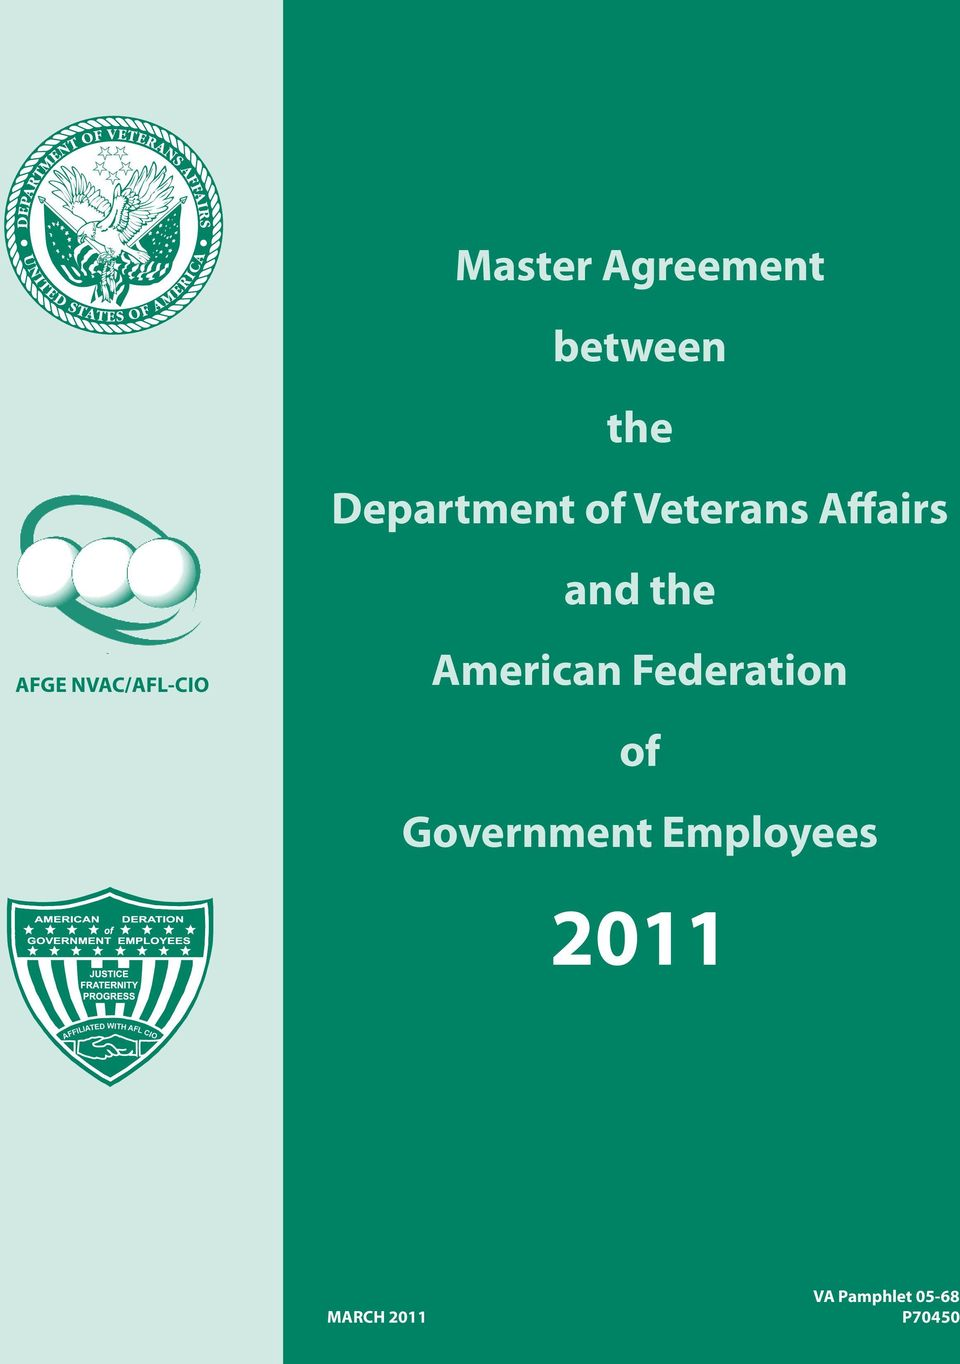 American Federation of Government Employees 2011